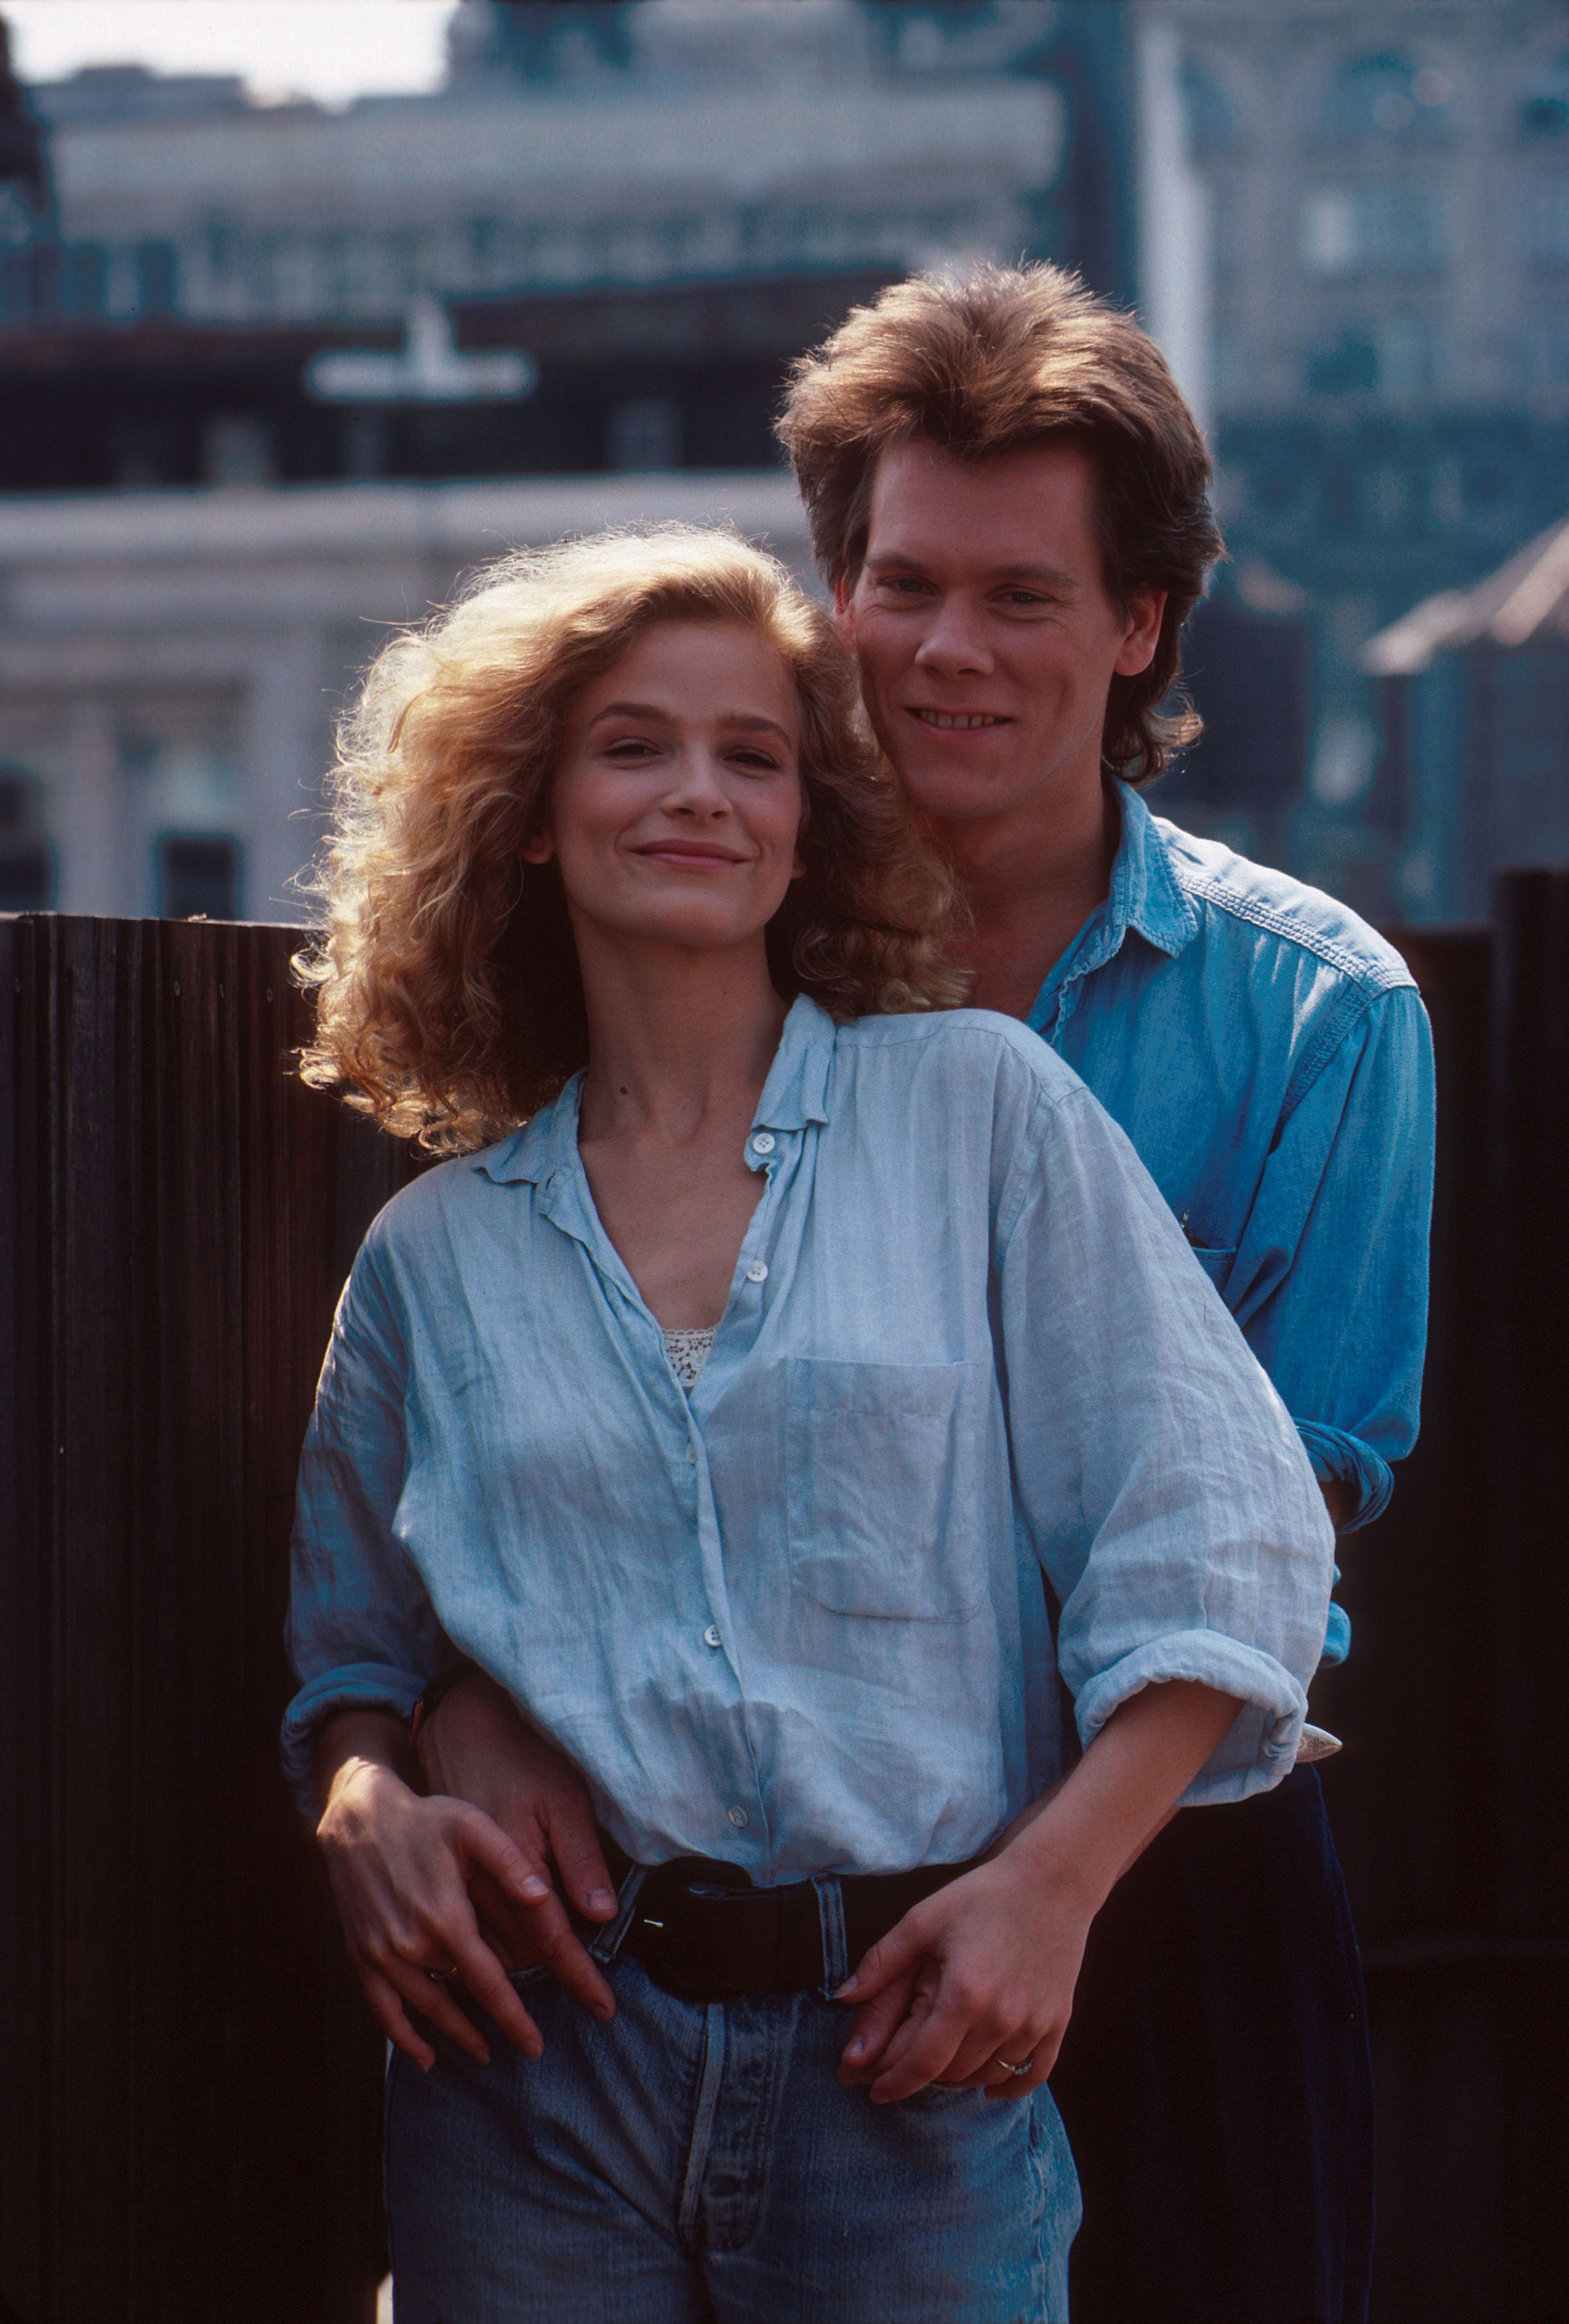 Kevin Bacon and Kyra Sedgwick pose for a shoot in New York in August 1988 | Photo: Getty Images